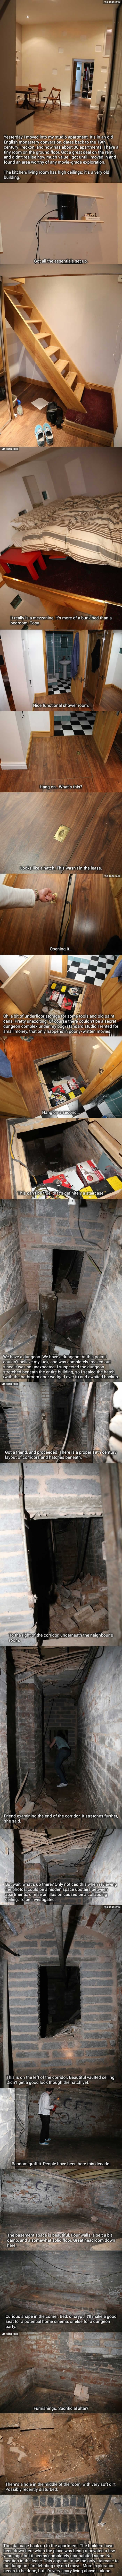 """So I just moved into a new apartment, and made a big discovery... of the """"Secret Dungeon"""""""